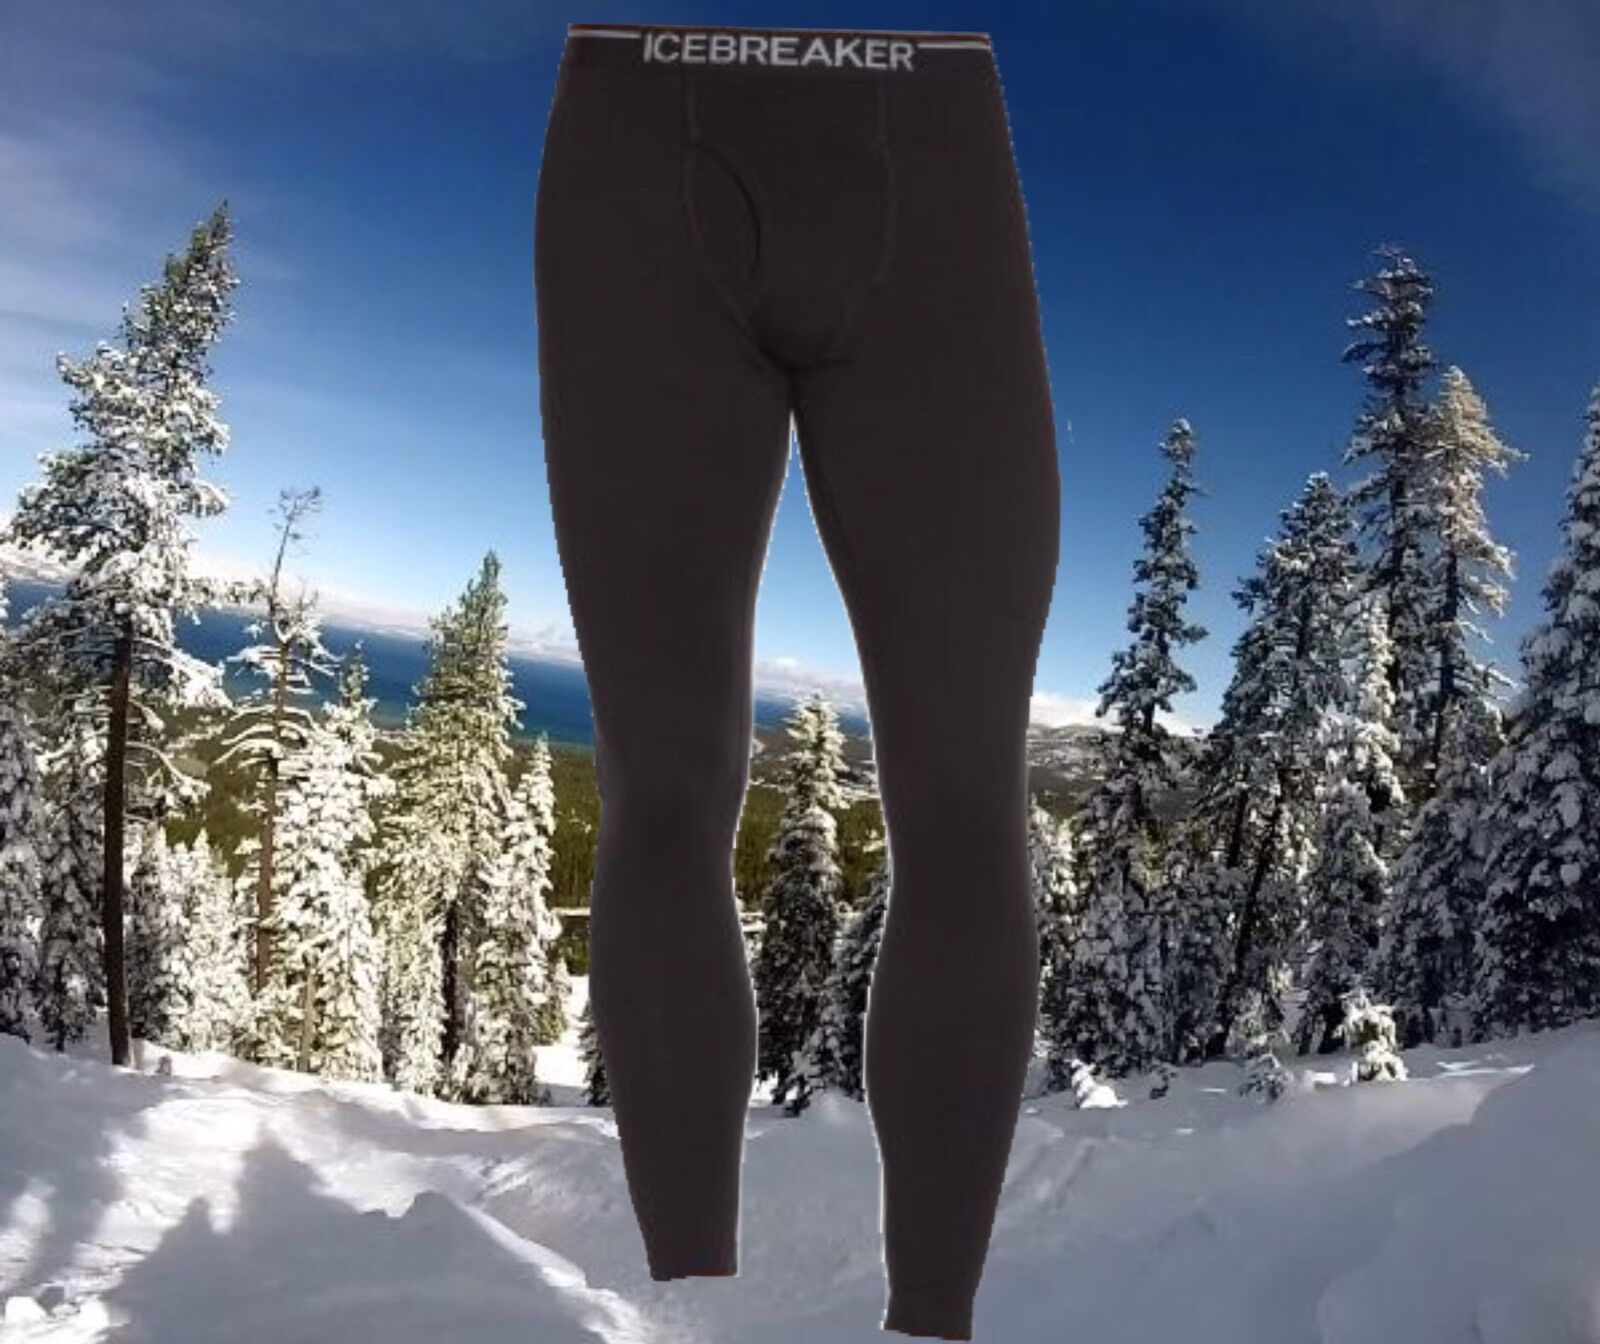 Icebreaker Mens Small Apex Merino Wool Sports Running Leggings Tights Nwt